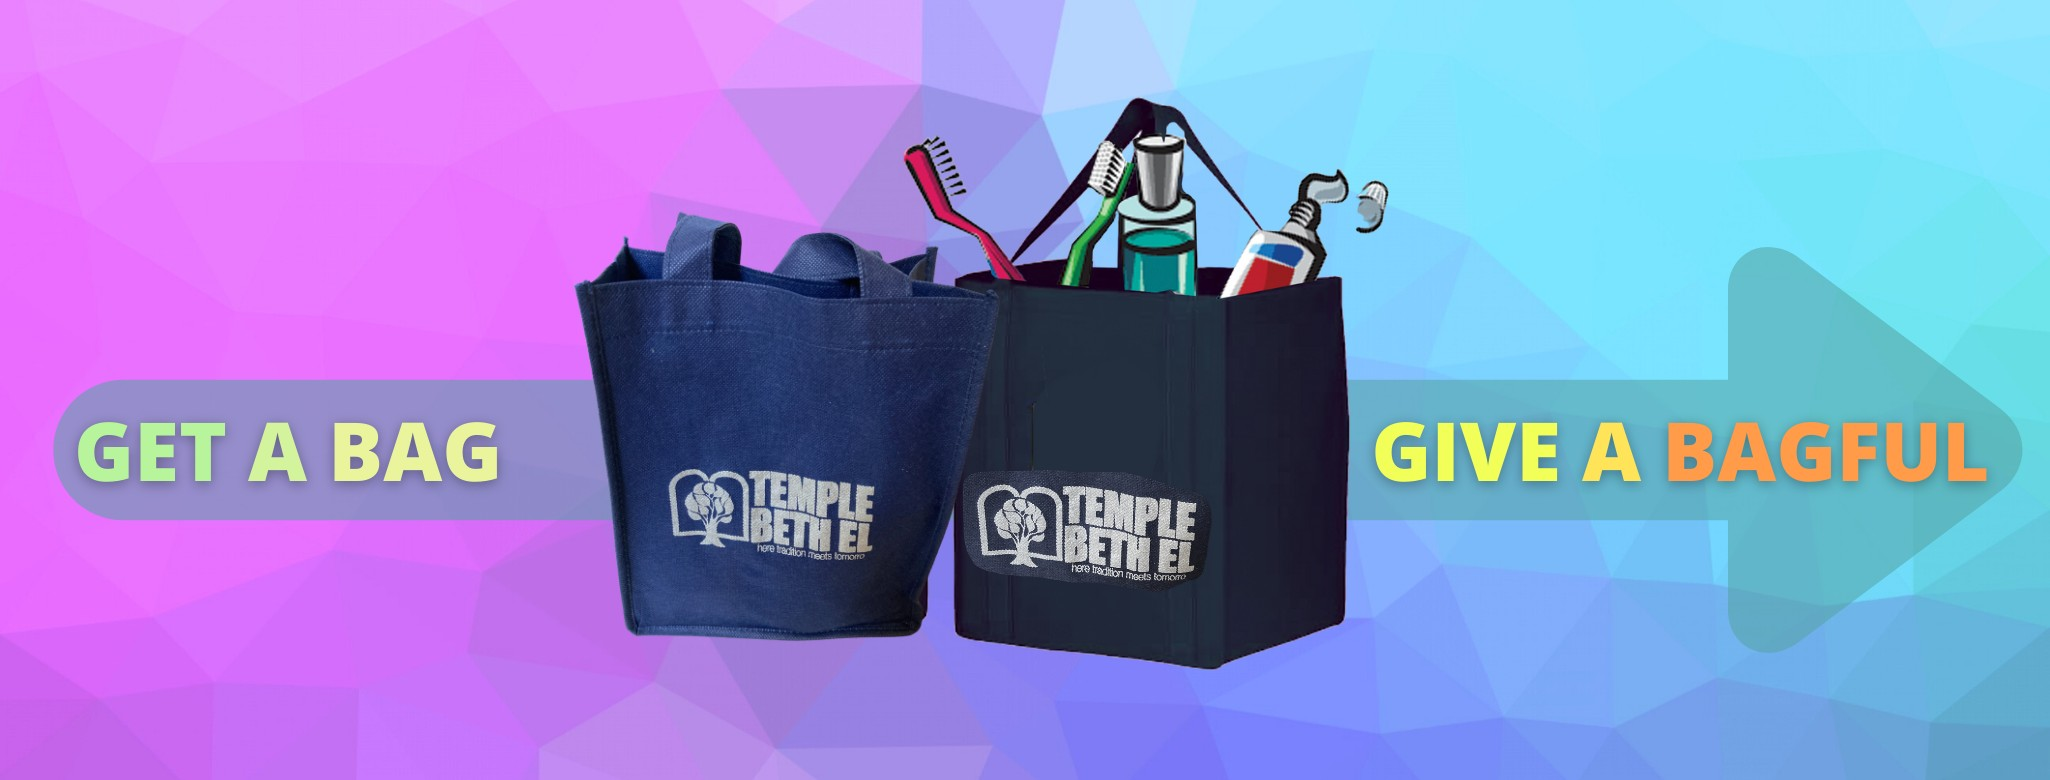 """<a href=""""https://www.templebethel.com/toiletries-in-totes---get-a-bag-give-a-bag.html""""                                     target="""""""">                                                                 <span class=""""slider_title"""">                                     Click image for more information                                </span>                                                                 </a>"""